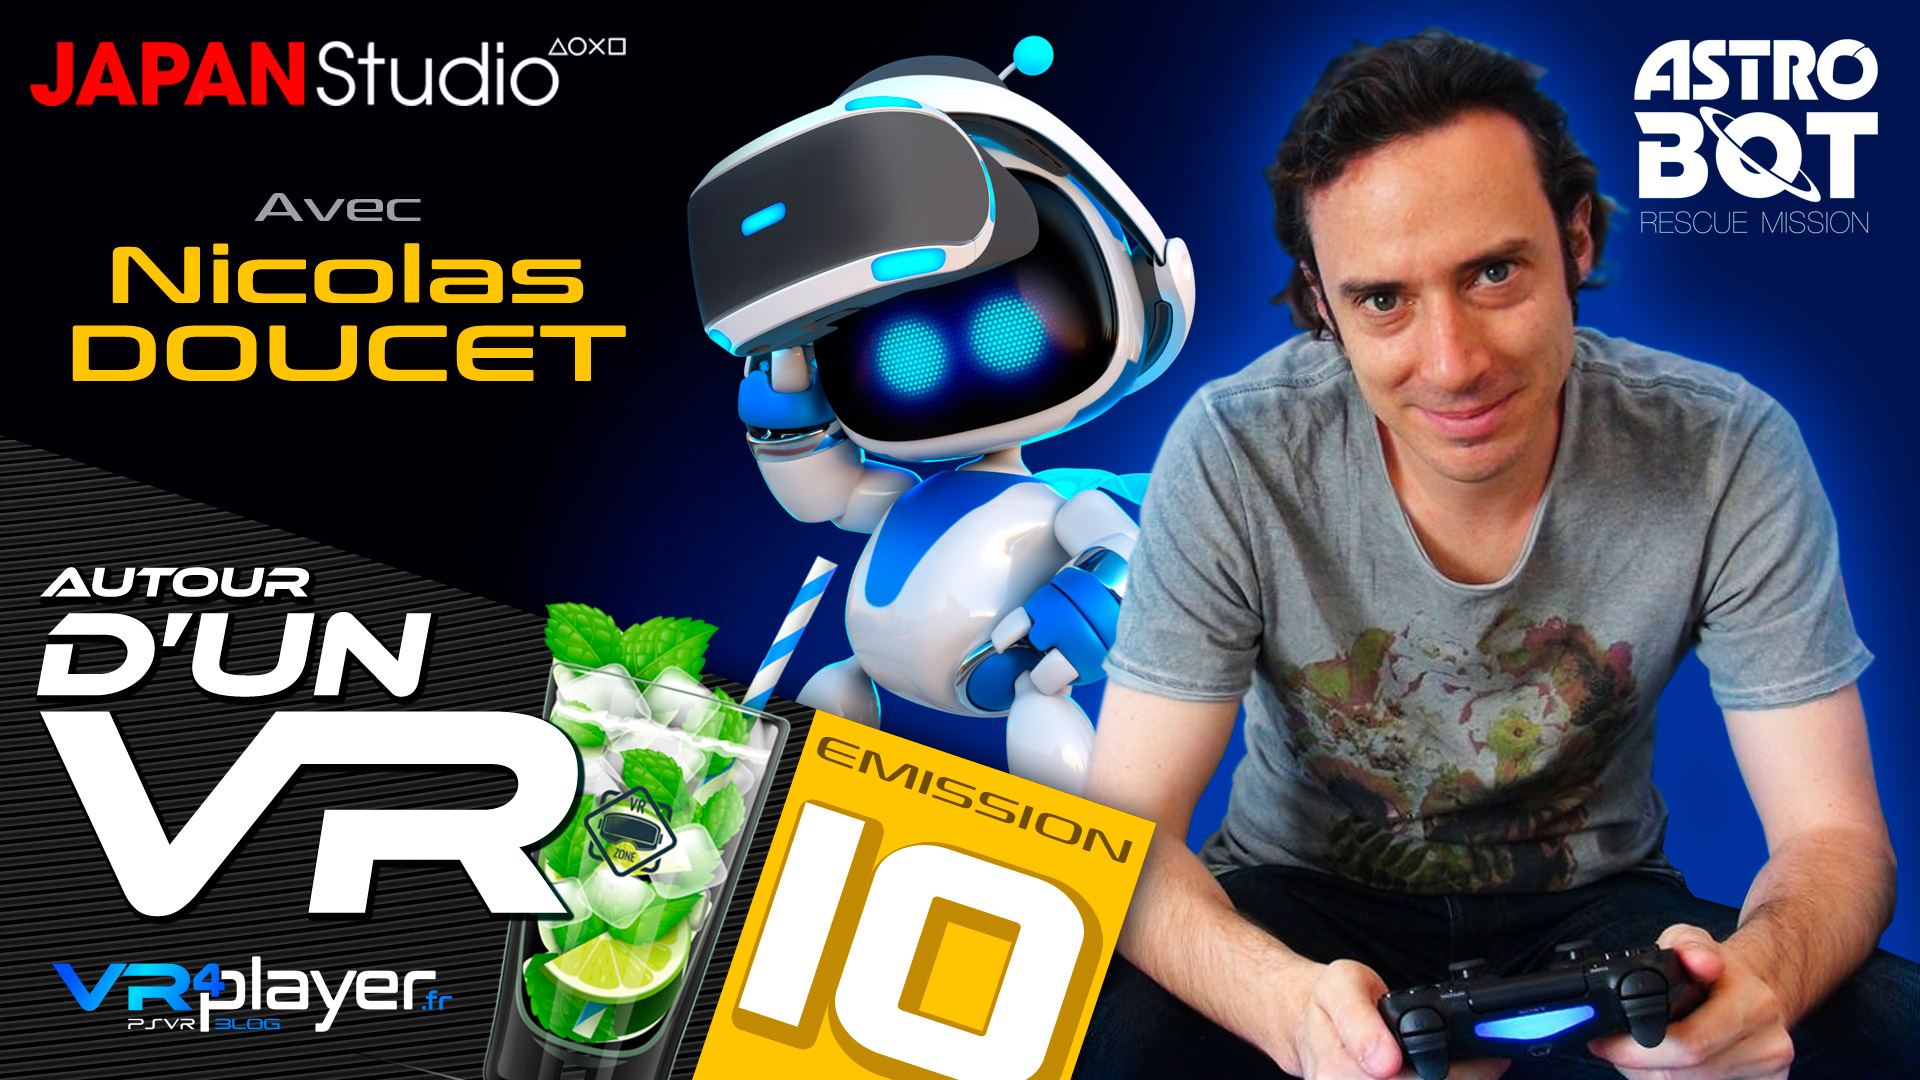 Podcast audio PlayStation VR PSVR Autour d'un VR VR4Player Nicolas Doucet Astro Bot